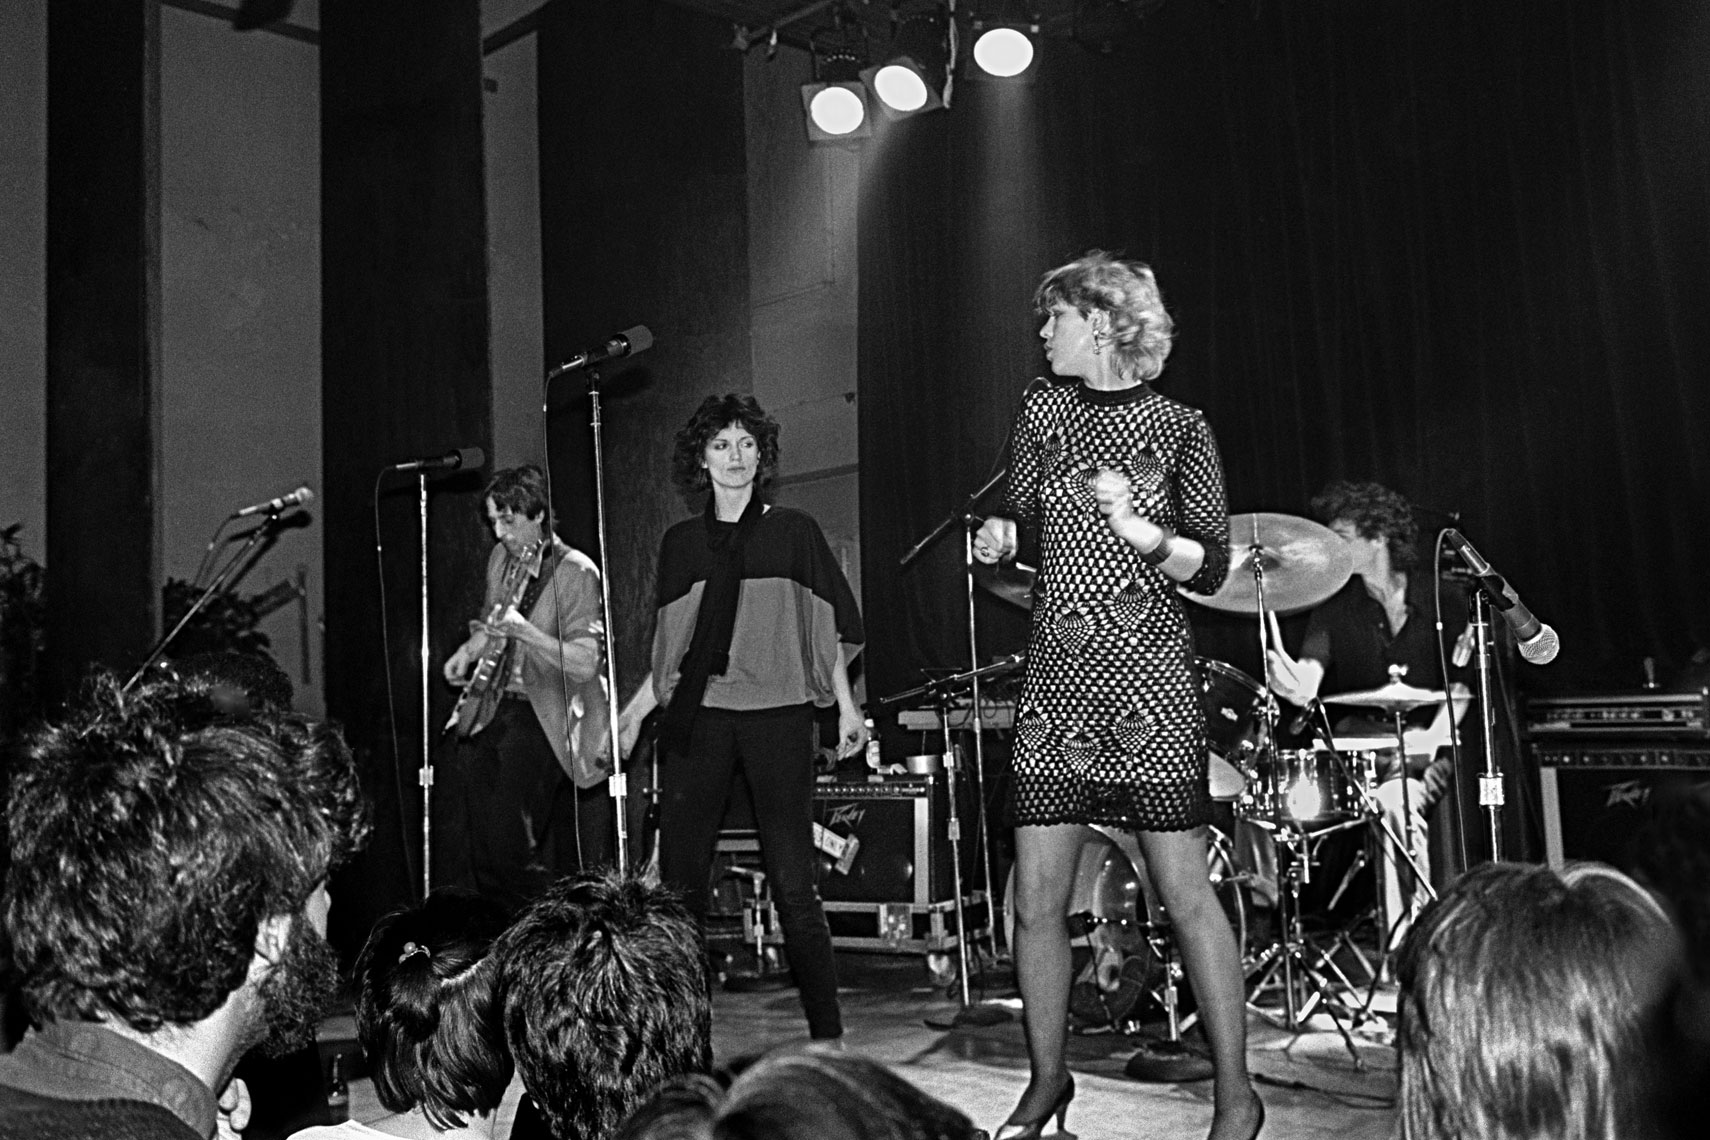 135_137_071_Irving-Plaza_The-The-Waitresses_d